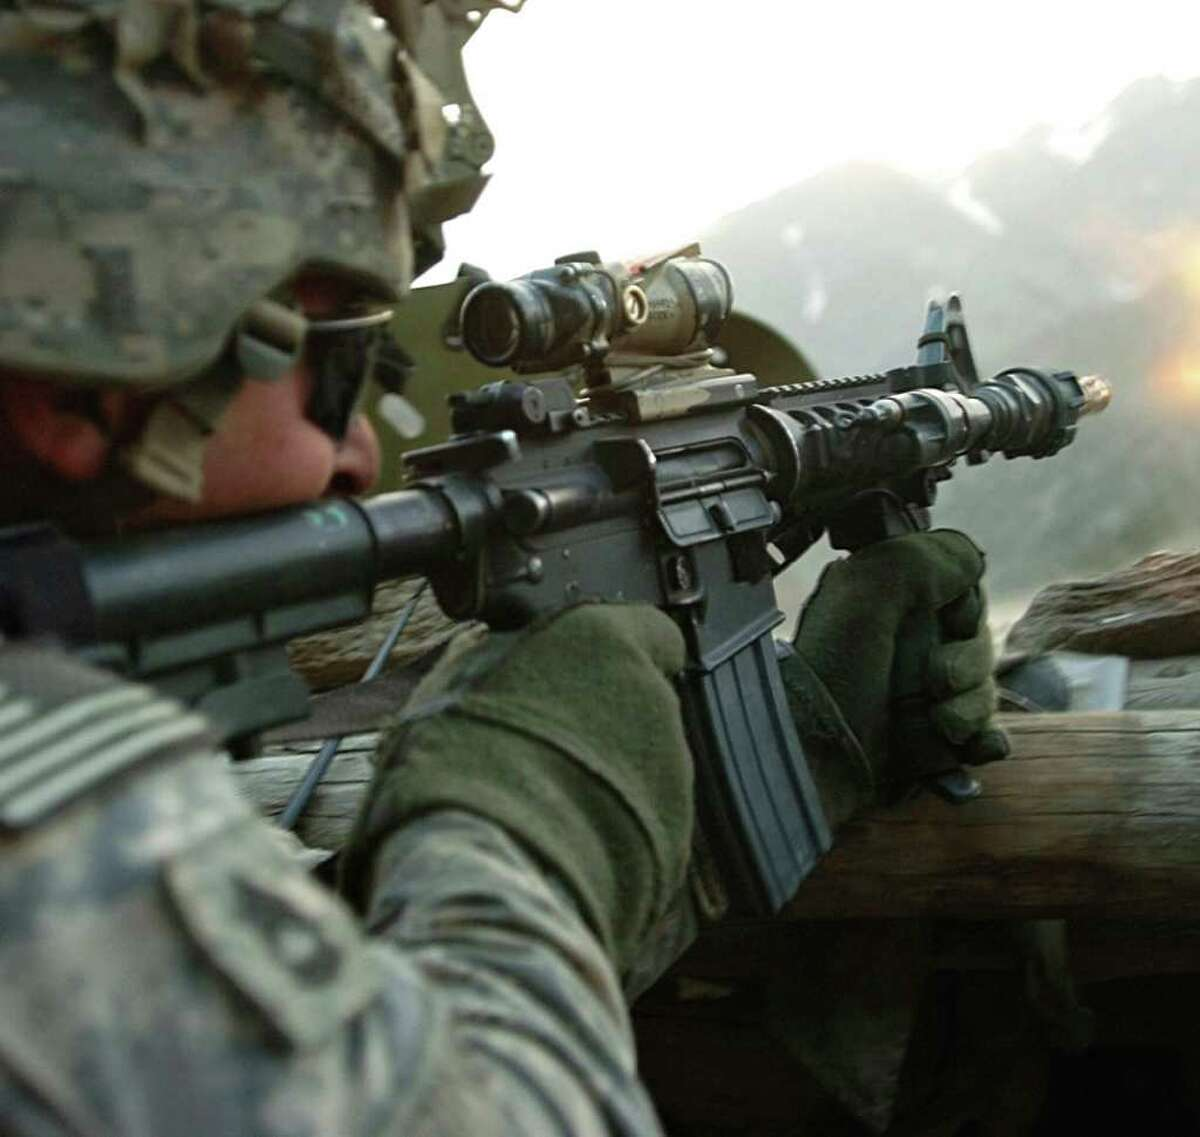 A soldier with 1st Battalion, 32nd Infantry Regiment, 10th Mountain Division, fires his assault rifle during a gun battle with insurgent forces in Afghanistan on July 12, 2009. President Obama will visit Fort Drum, NY - the 10th Mountain Division's home - Thursday after announcing a plan Wednesday night to withdraw troops from Afghanistan. AFP PHOTO/HO/US COALITION FORCES/MATTHEW C. MOELLER